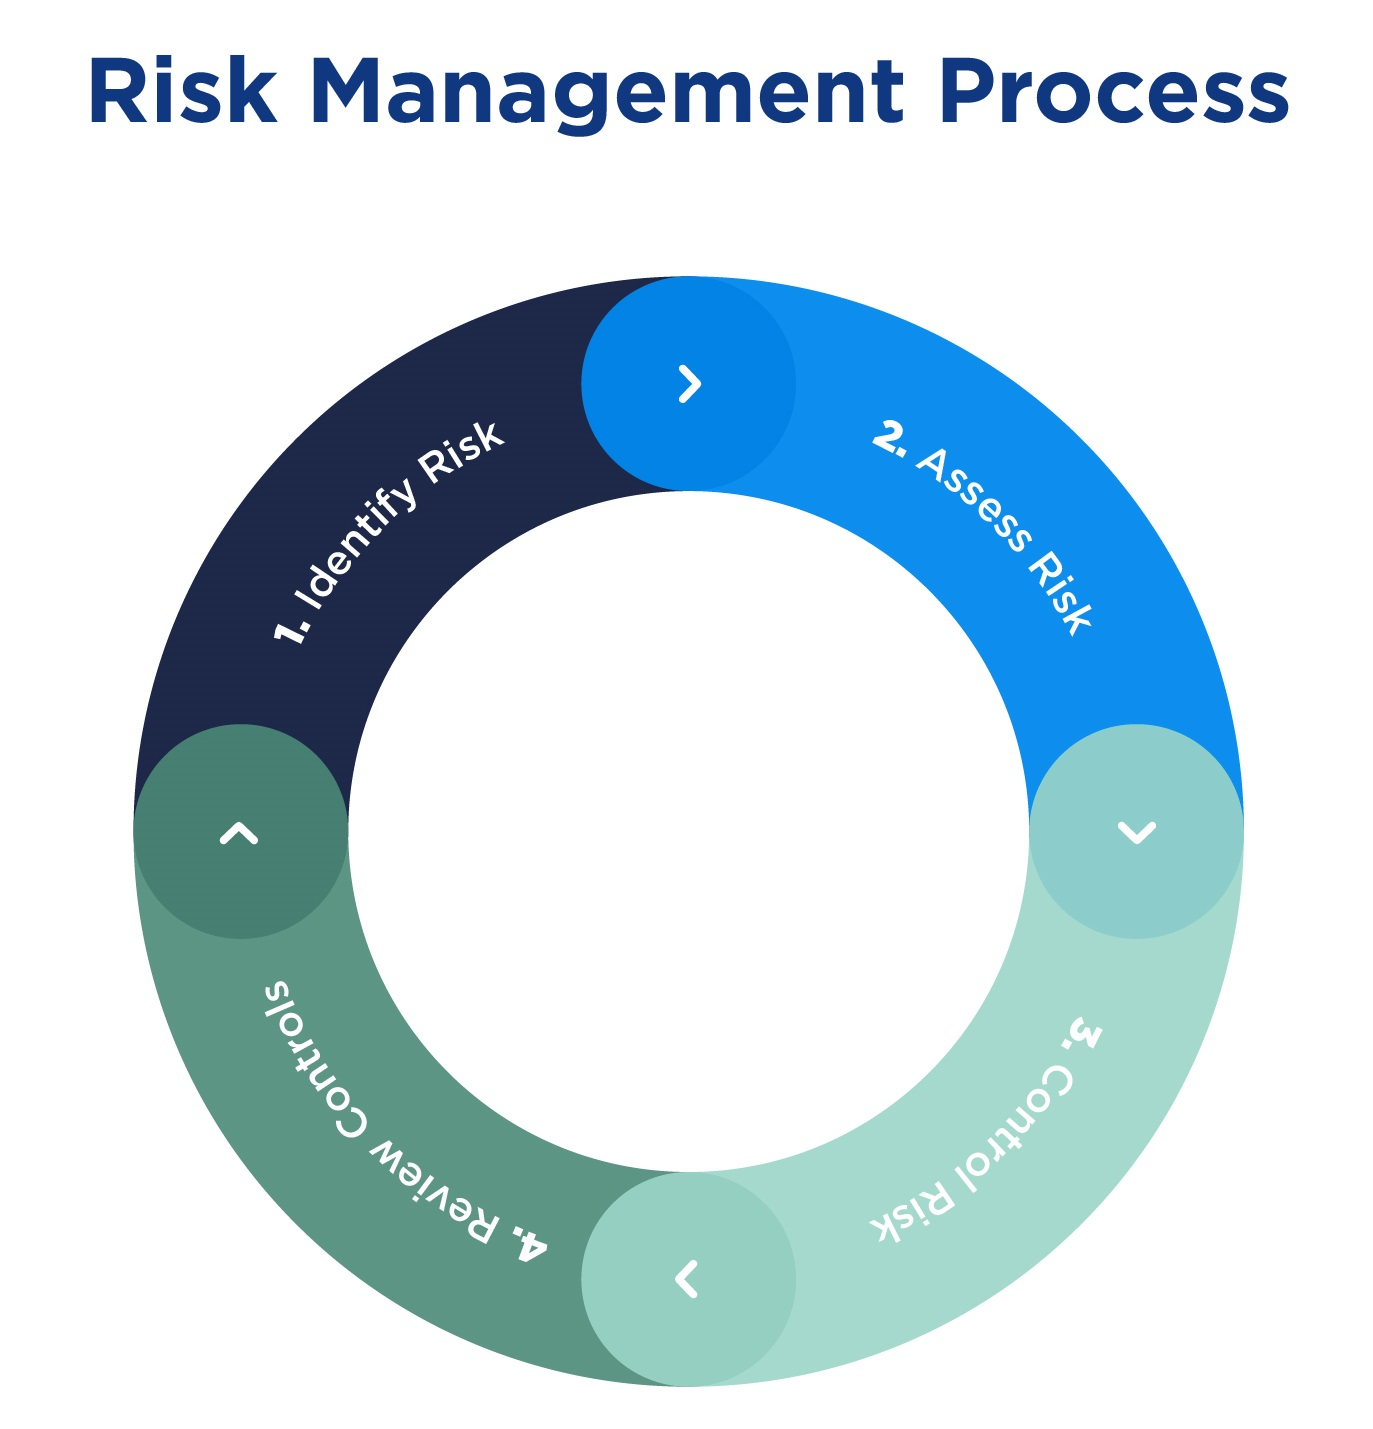 Risk management circle